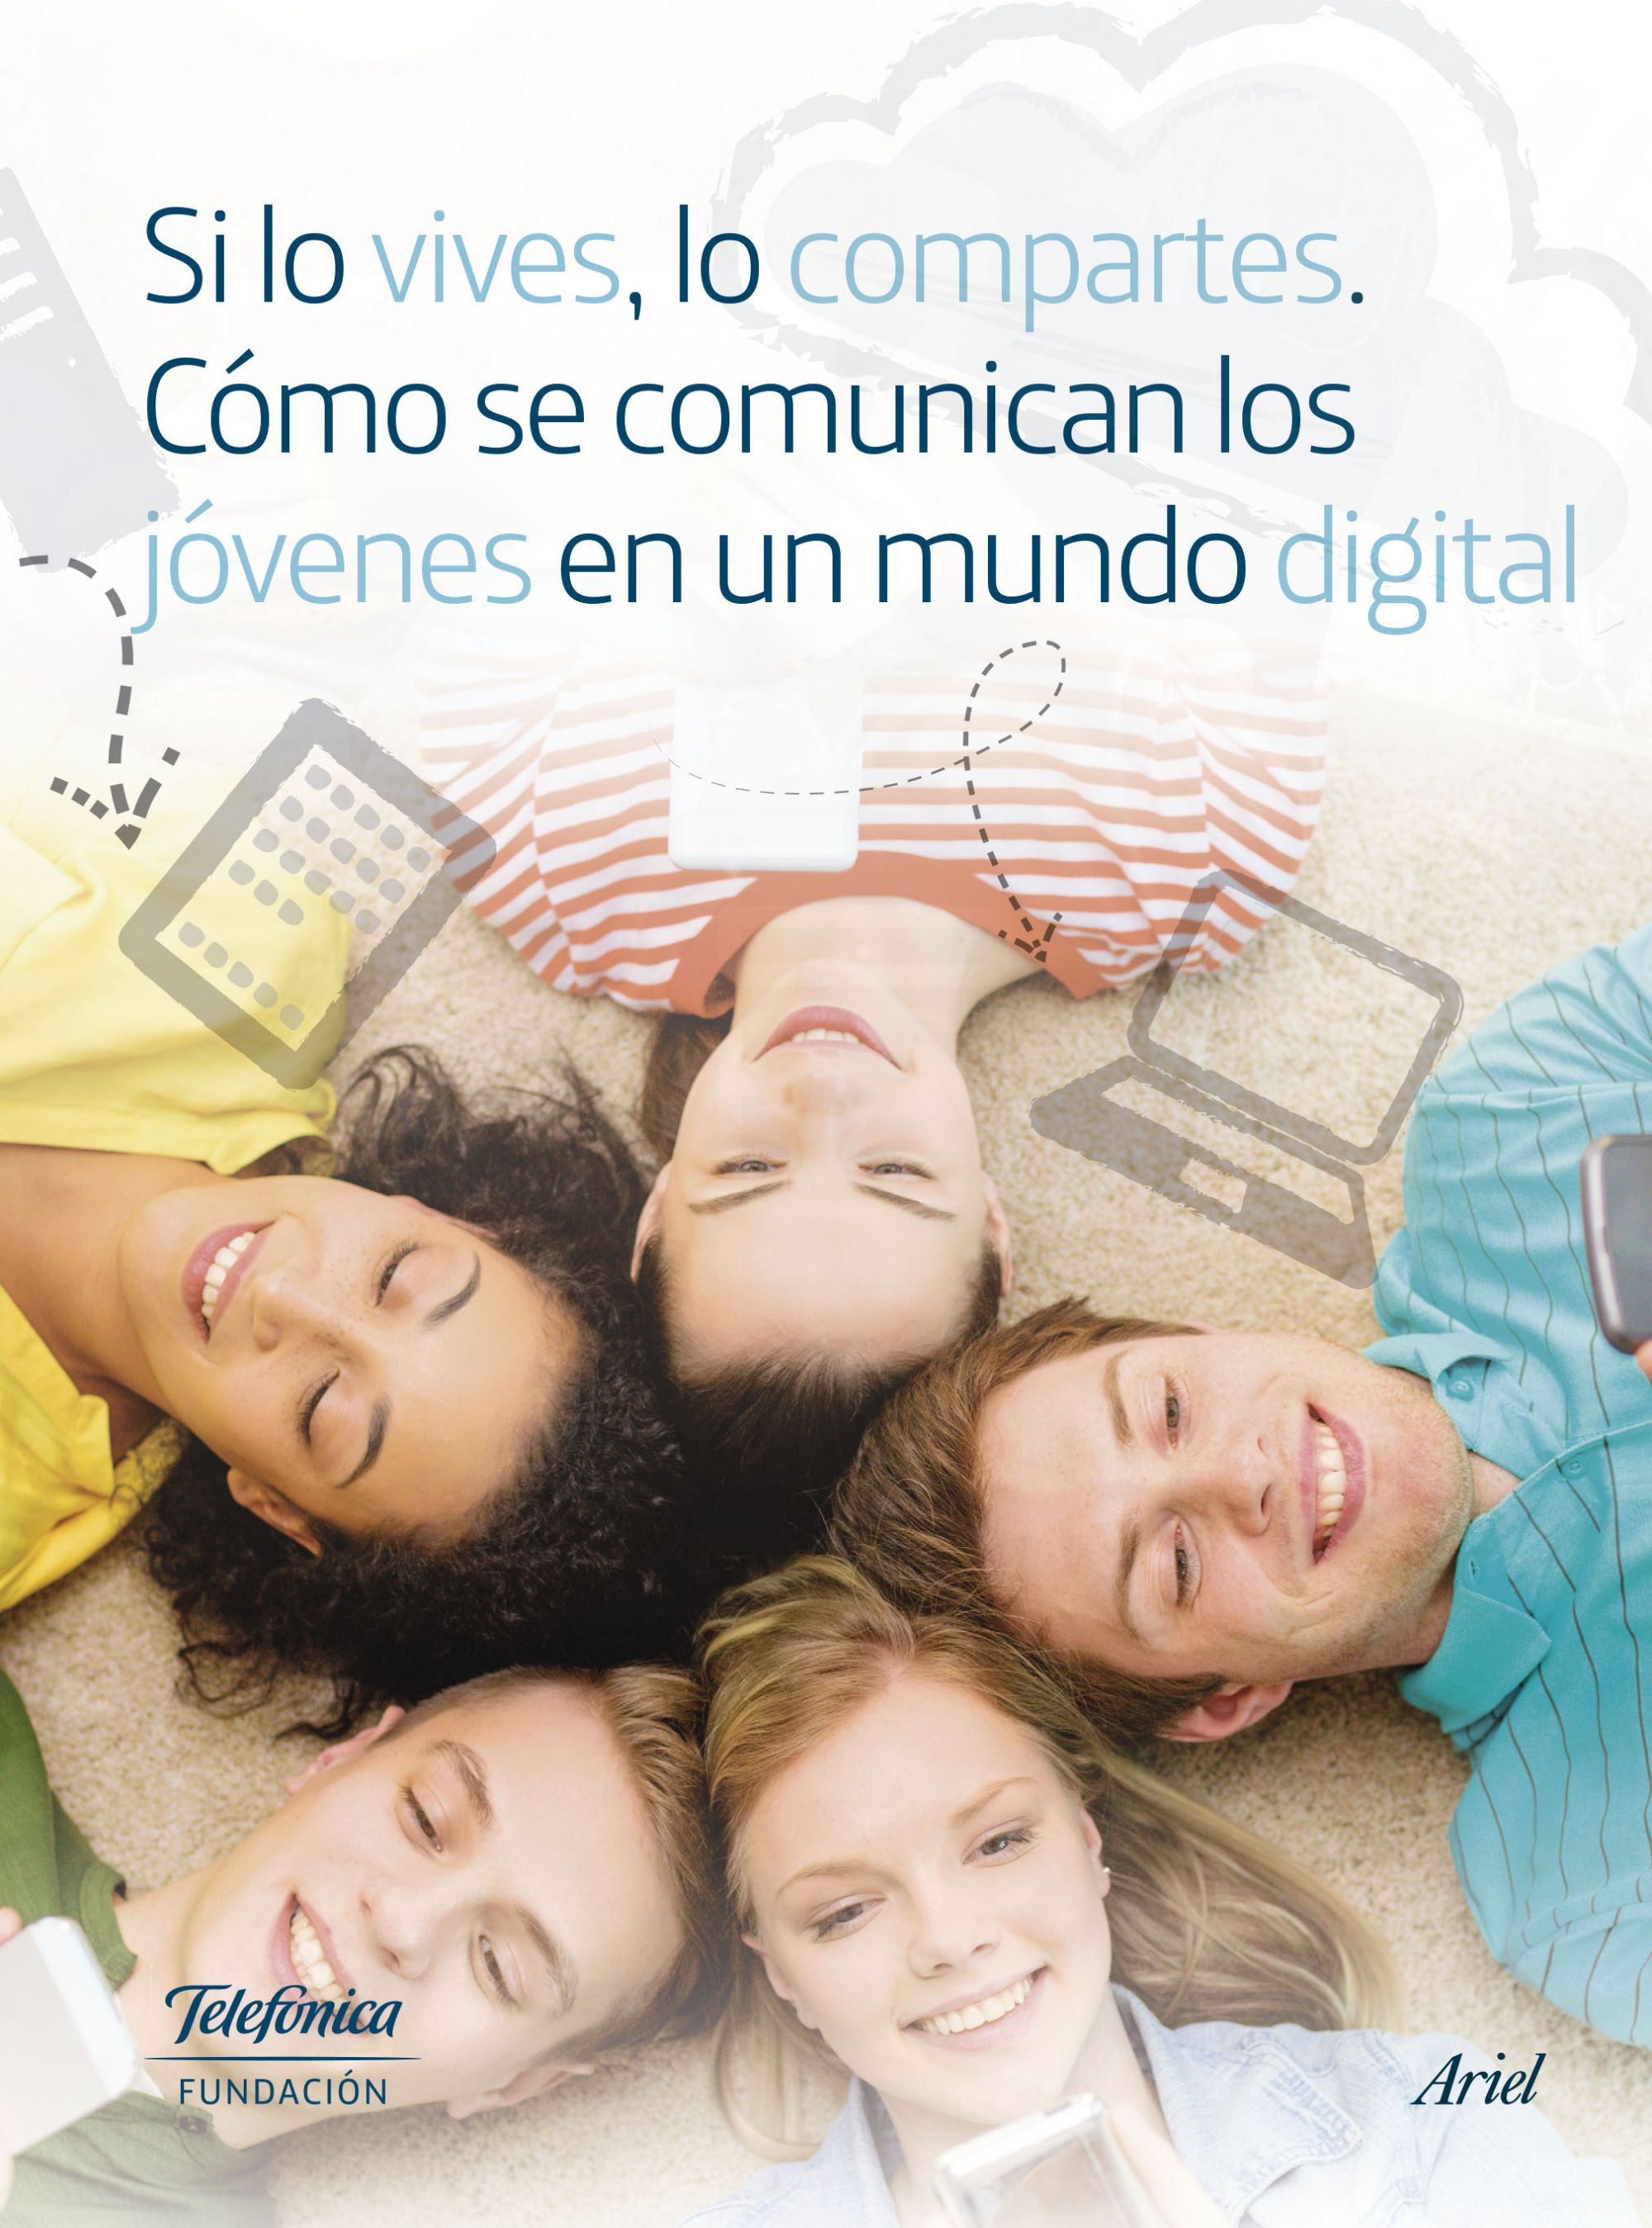 Image result for si lo vives lo compartes fundacion telefonica